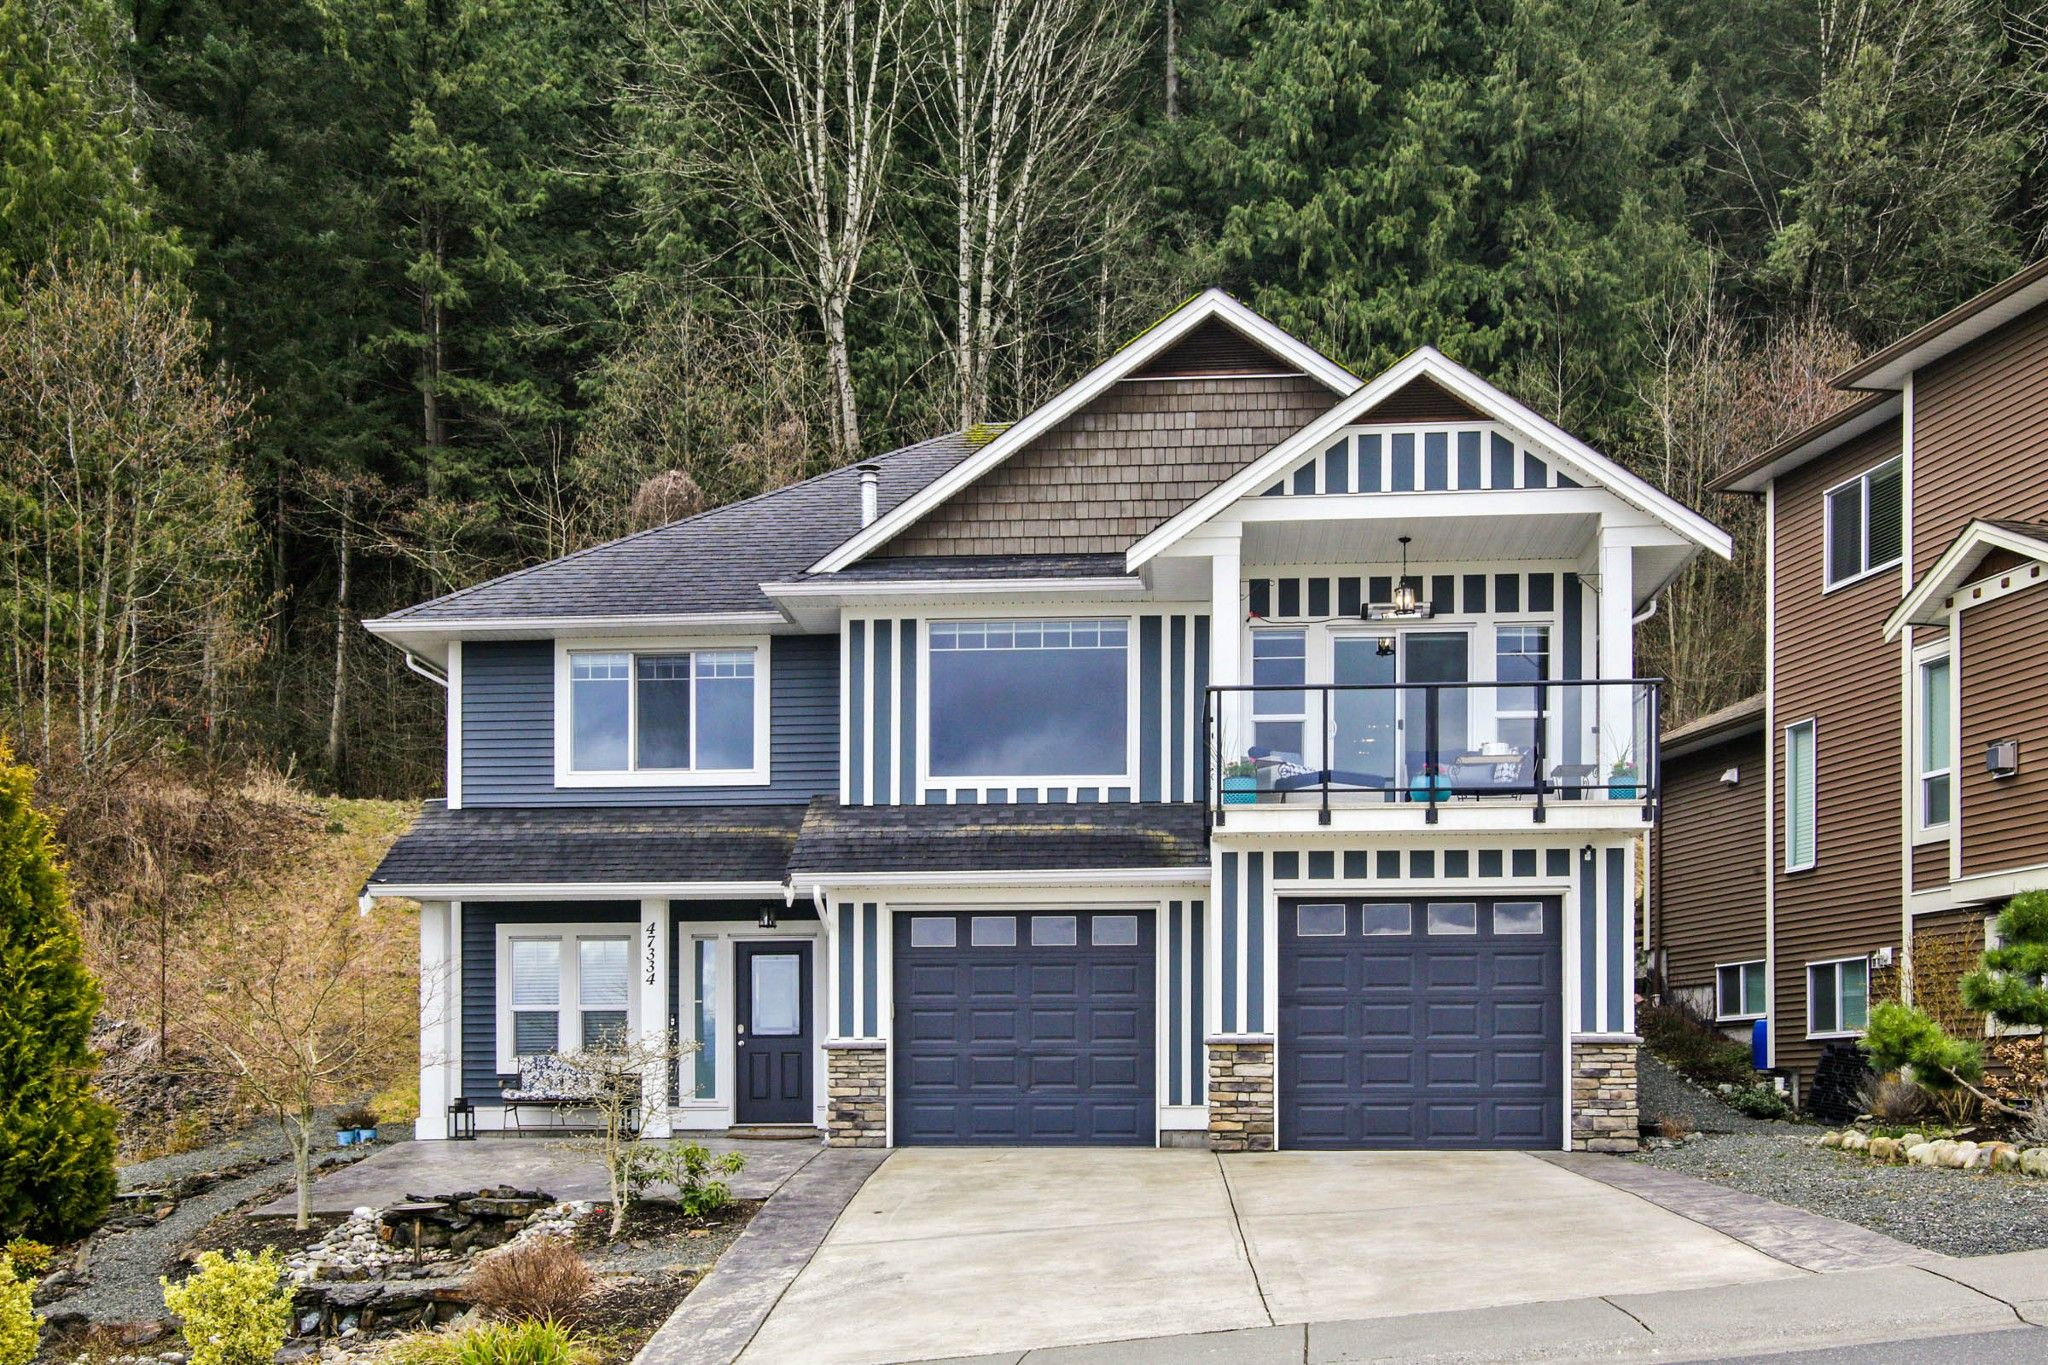 Main Photo: 47334 SYLVAN Drive in Chilliwack: Promontory House for sale (Sardis)  : MLS®# R2555679